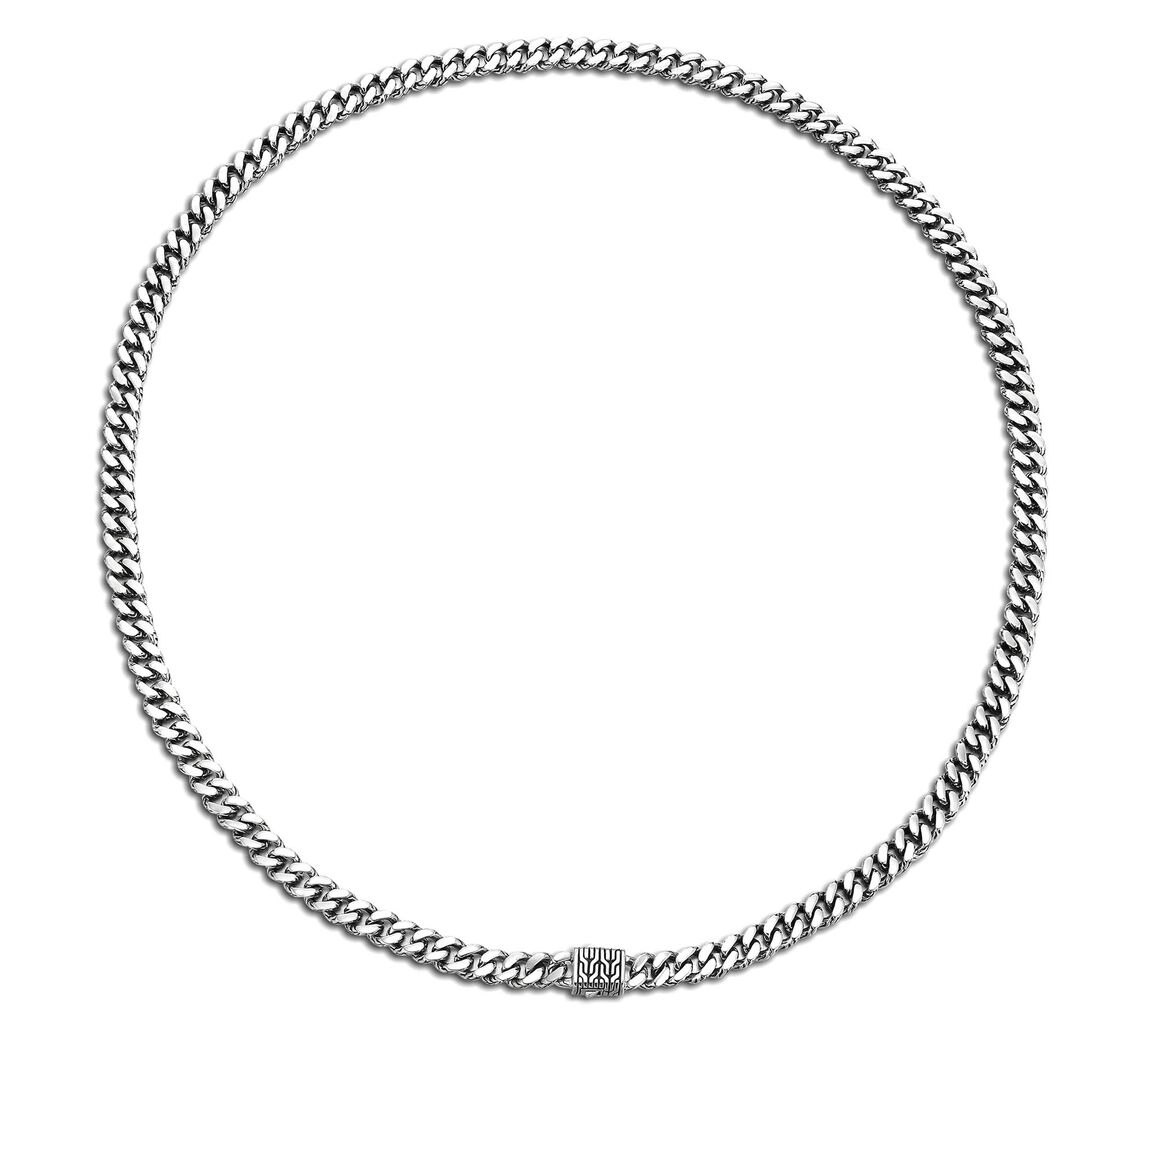 Classic Chain 7MM Chain Necklace in Silver